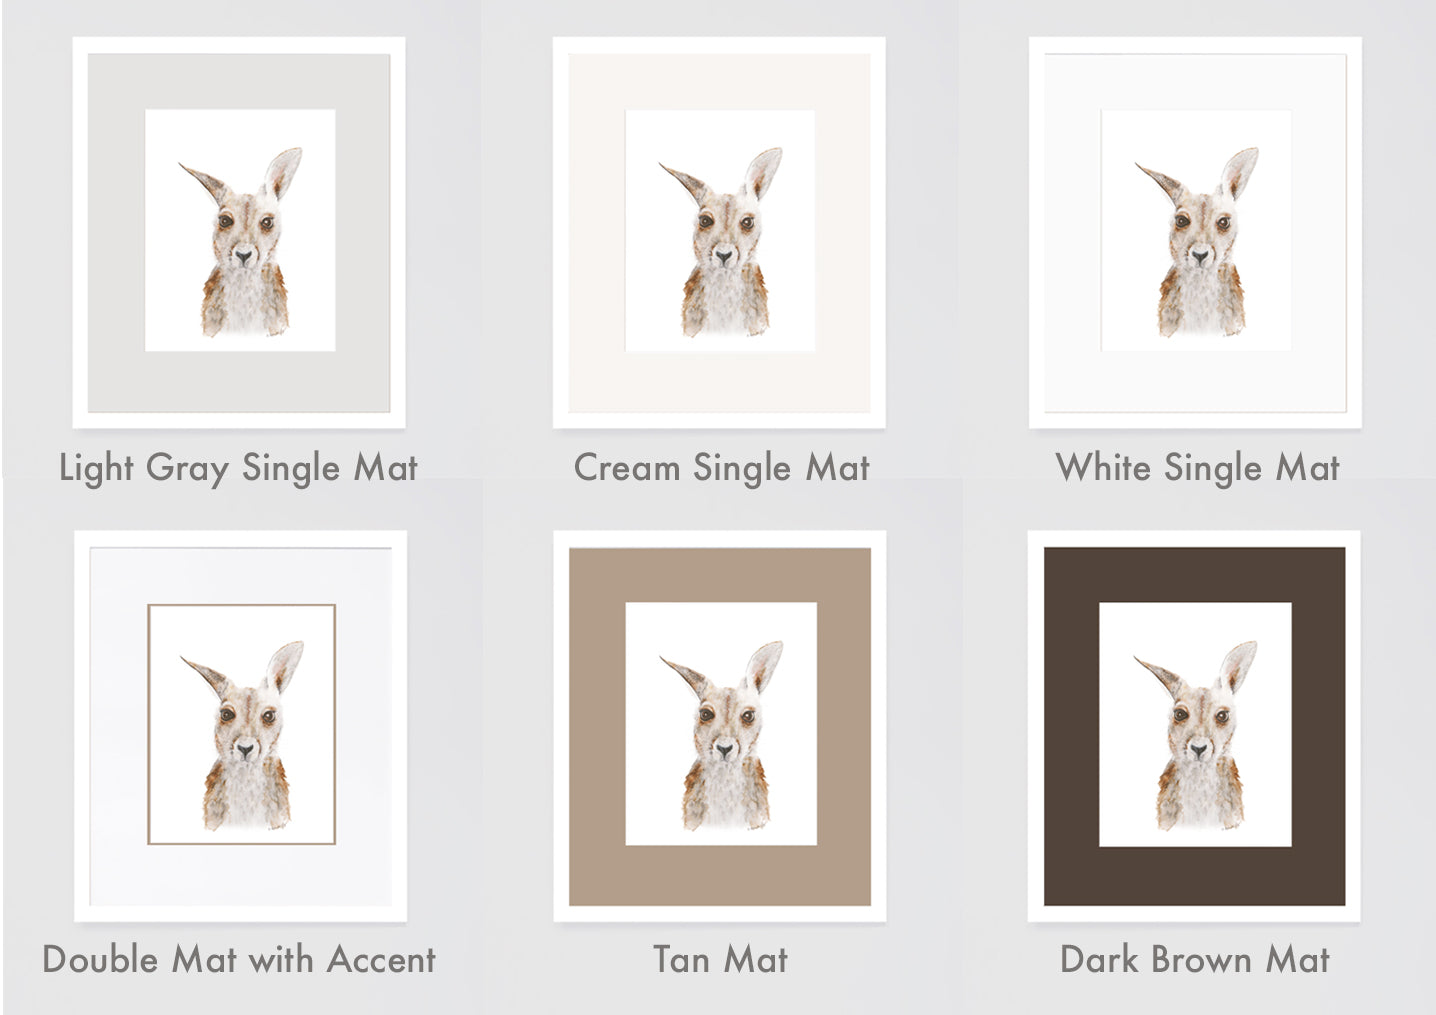 as you can see the tan mat and the dark brown mat tend to overpower the artwork and the kangaroo becomes less of the focus the white gray and cream is